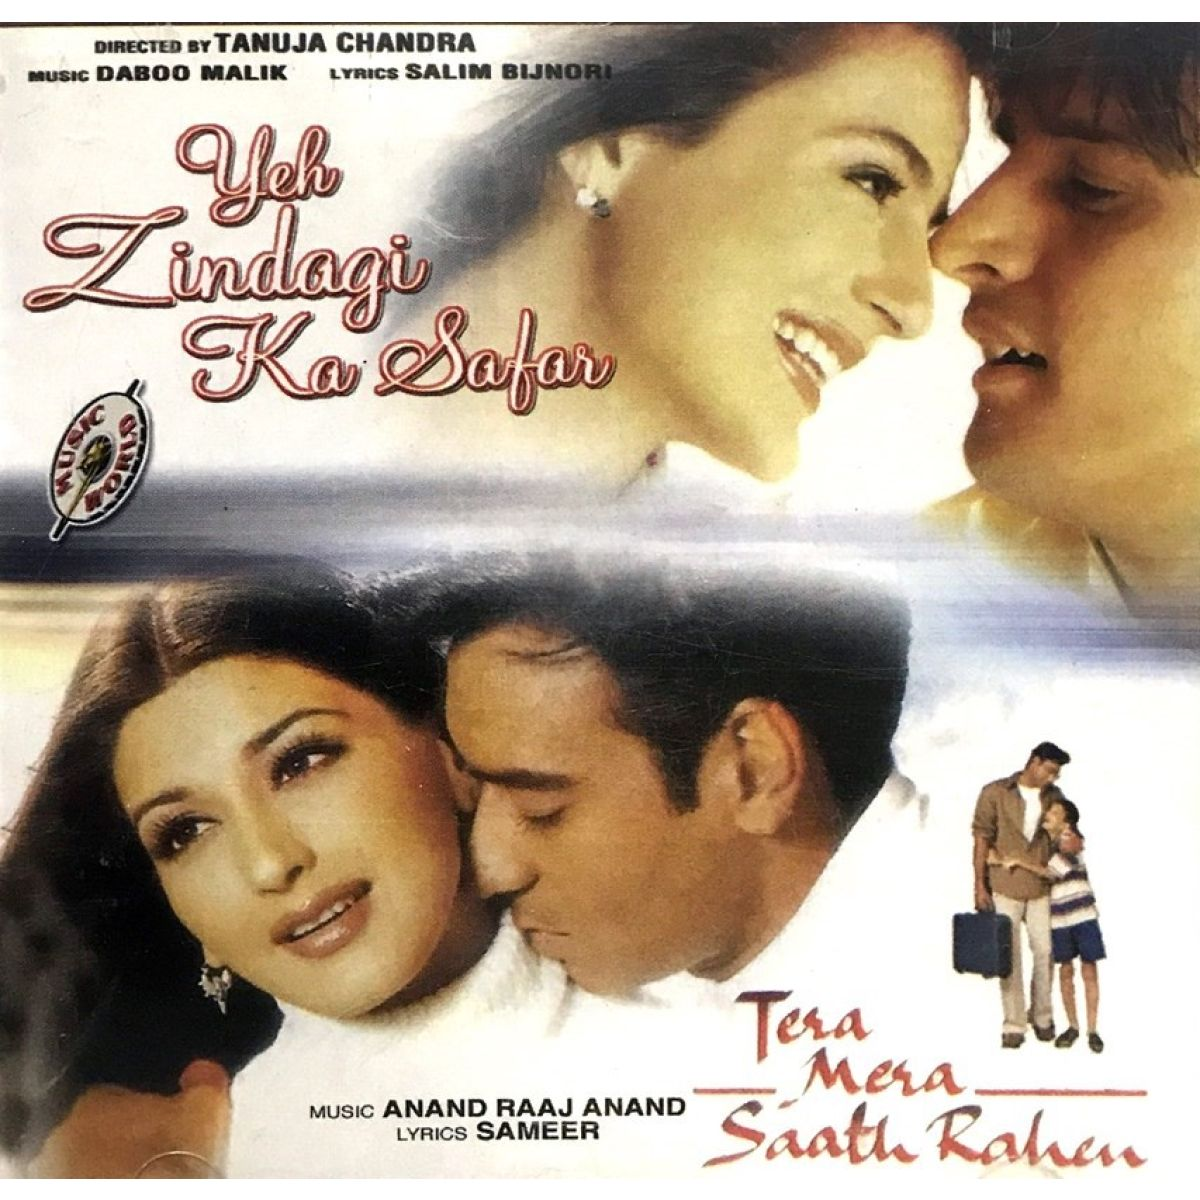 Yeh Zindagi KA Safar + Tena Mera Saath Rahen (Audio CD)